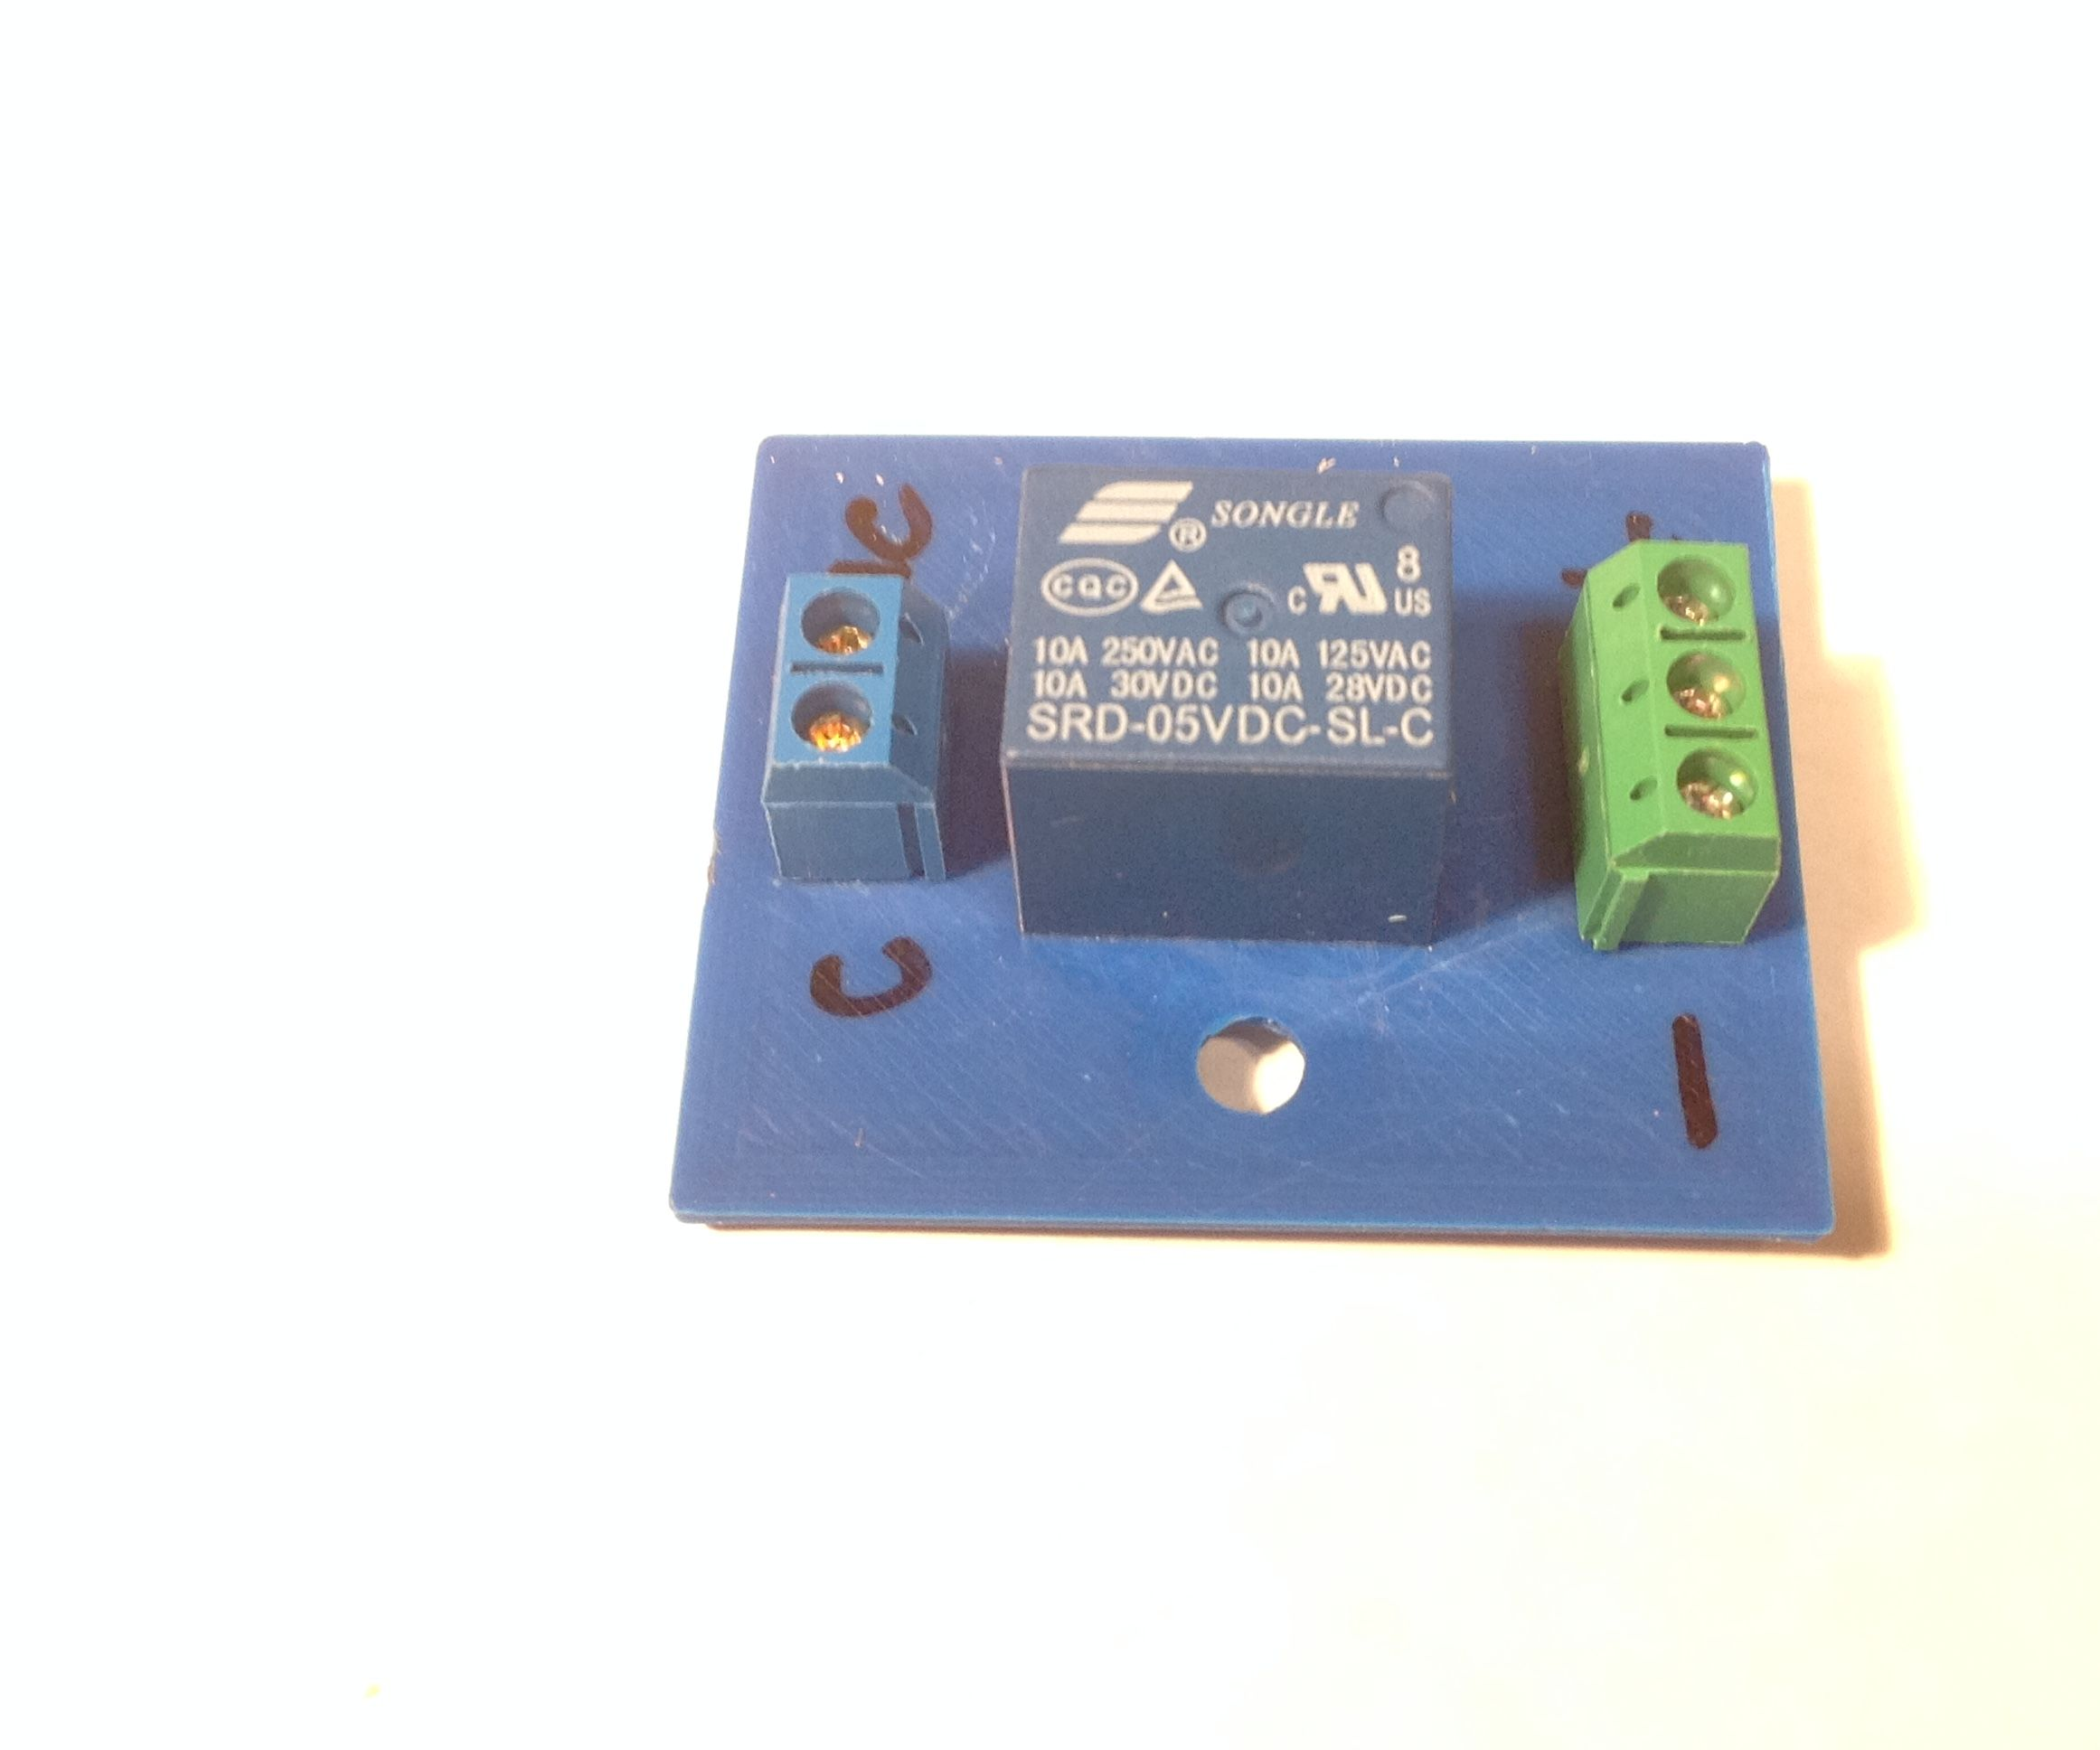 3D Printed PCB Substitute and Printing Skill Building